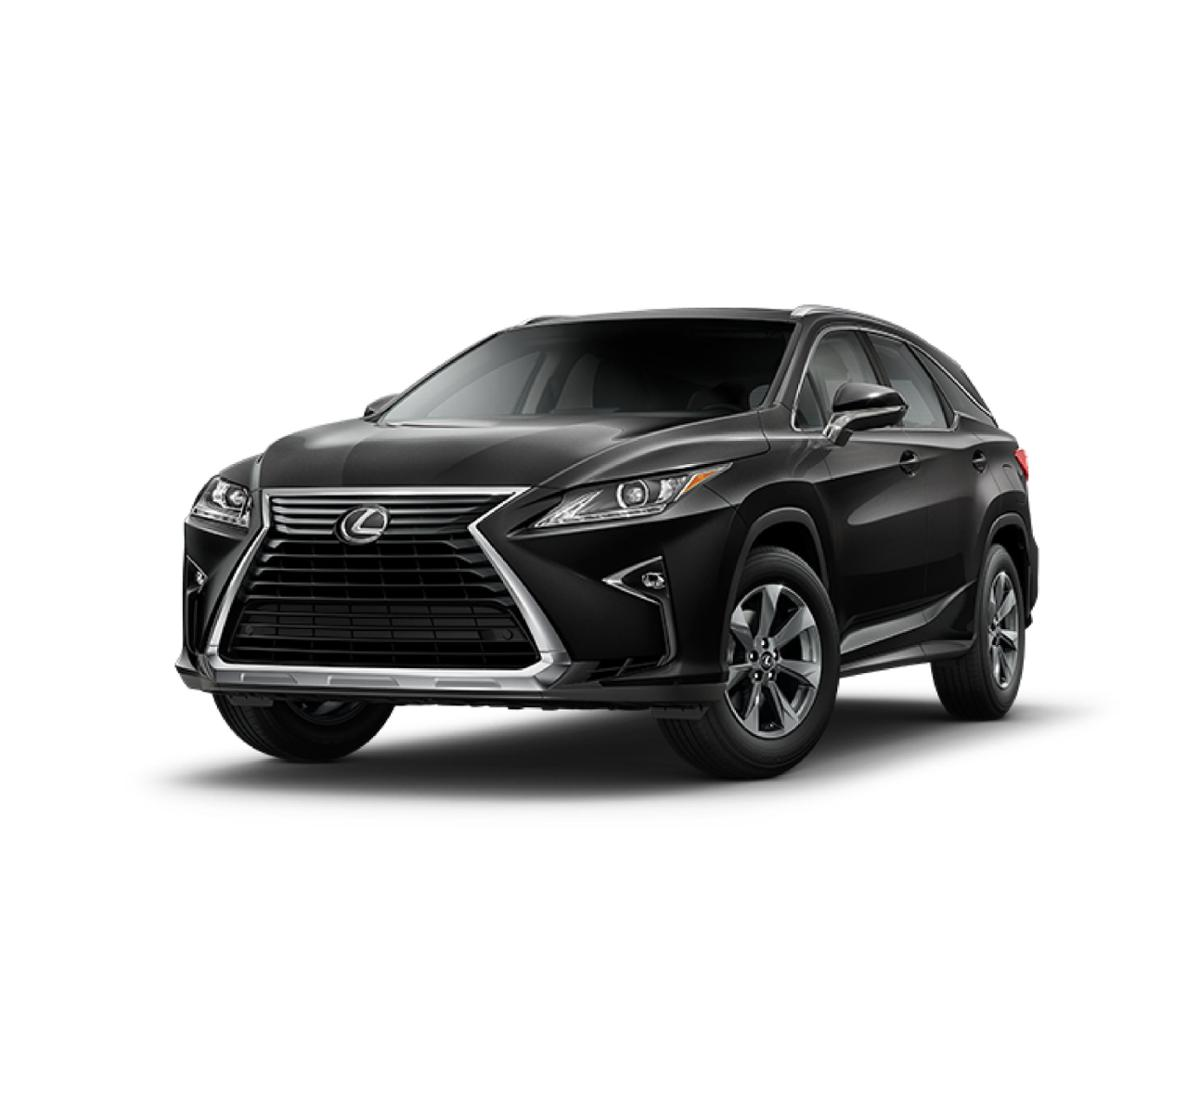 2018 Lexus RX 350L Vehicle Photo in Mission Viejo, CA 92692